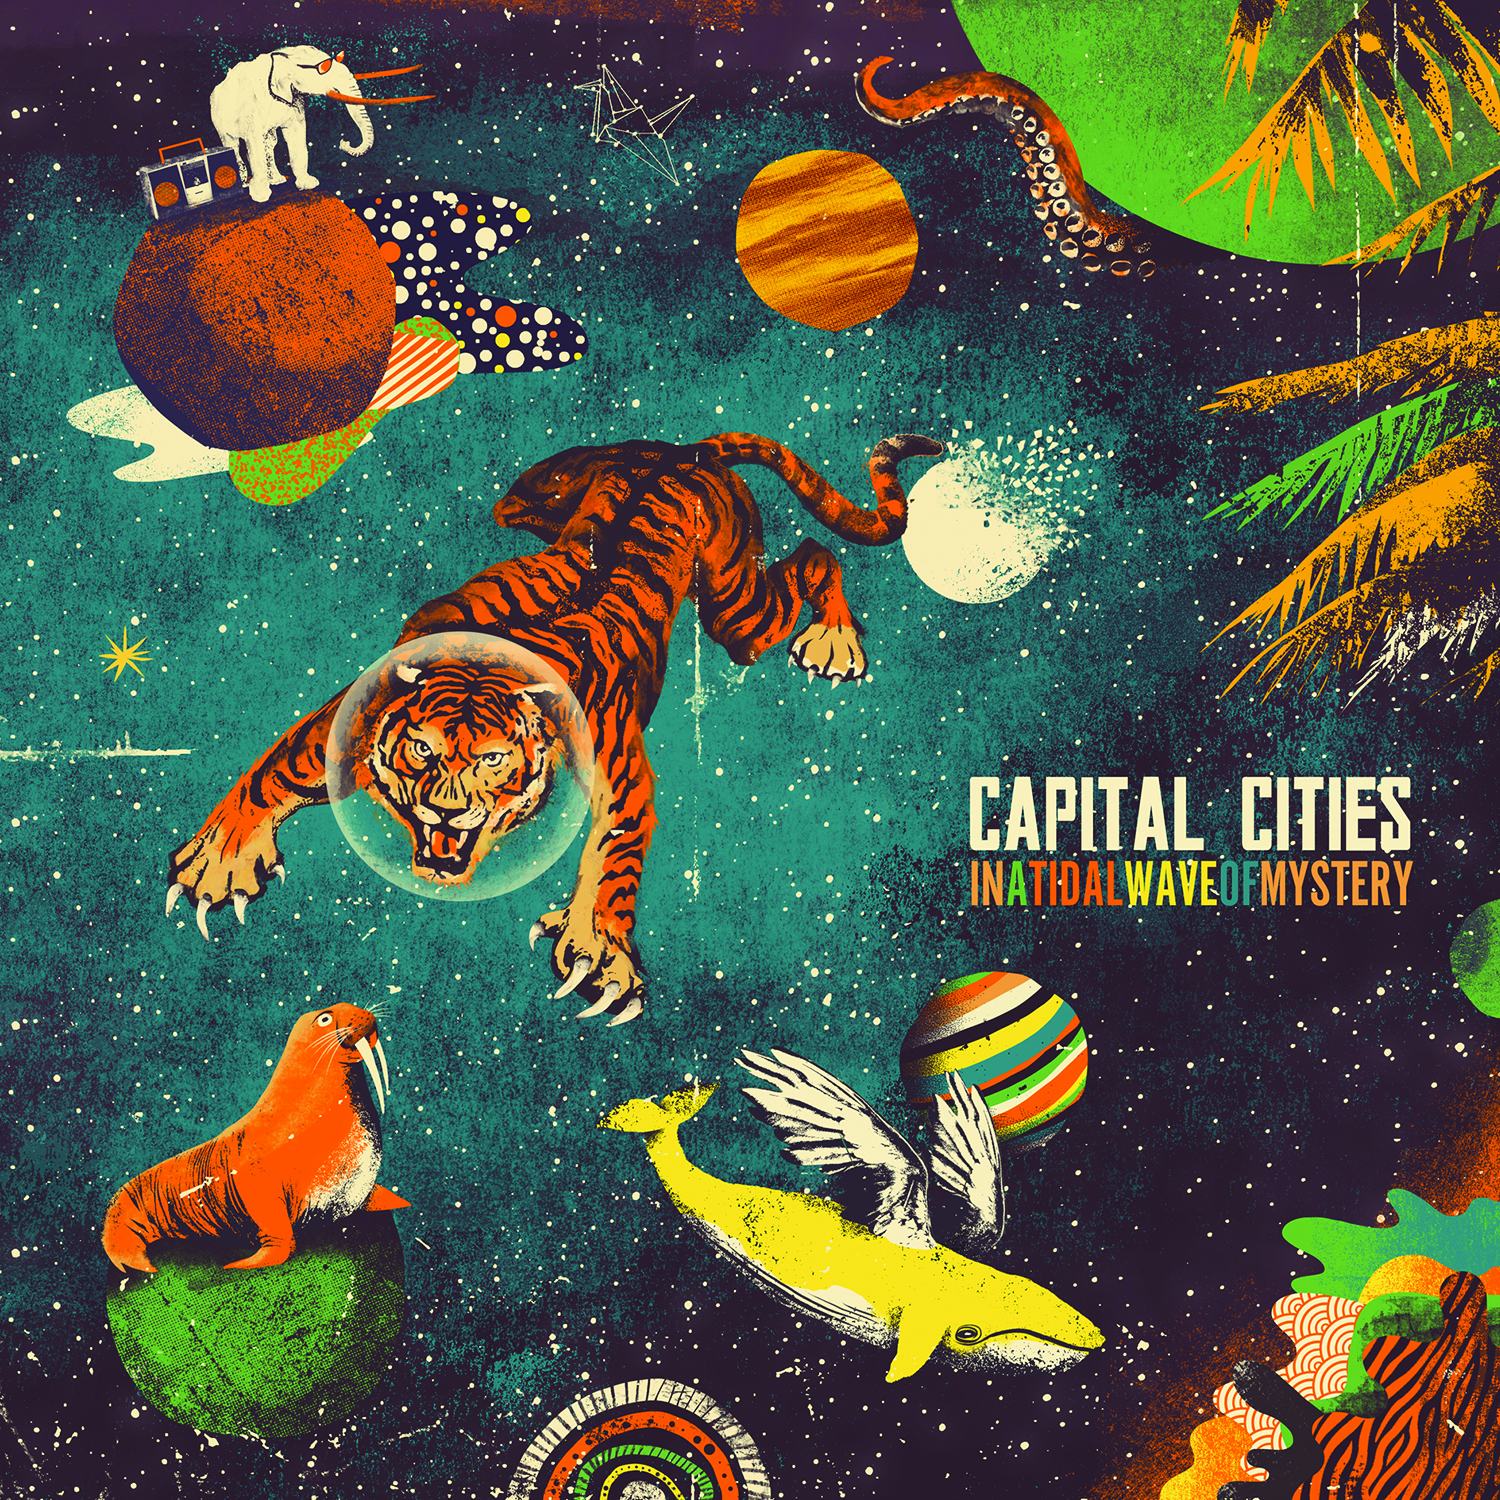 ALBUM REVIEW: Capital Cities – In a Tidal Wave of Mystery ...